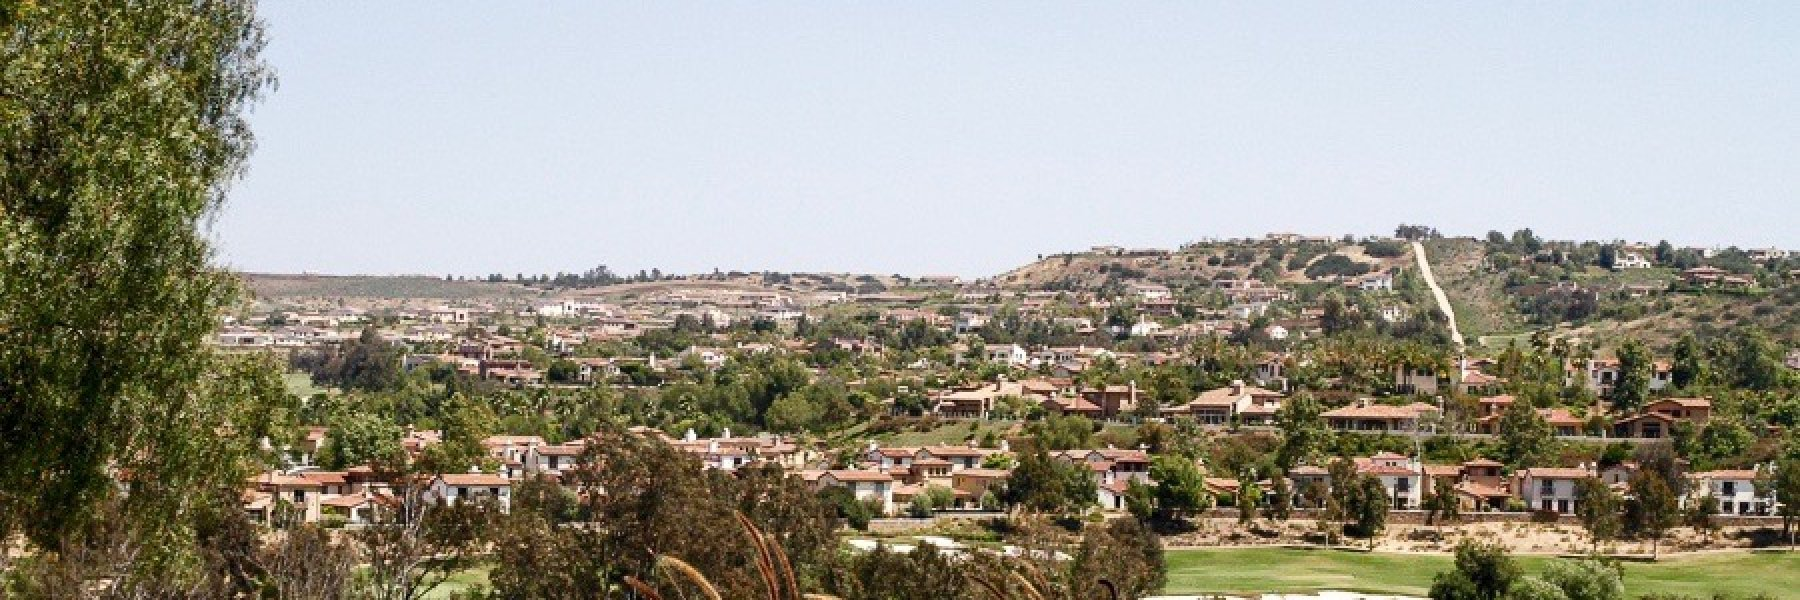 The Crosby is a community of homes in San Diego California